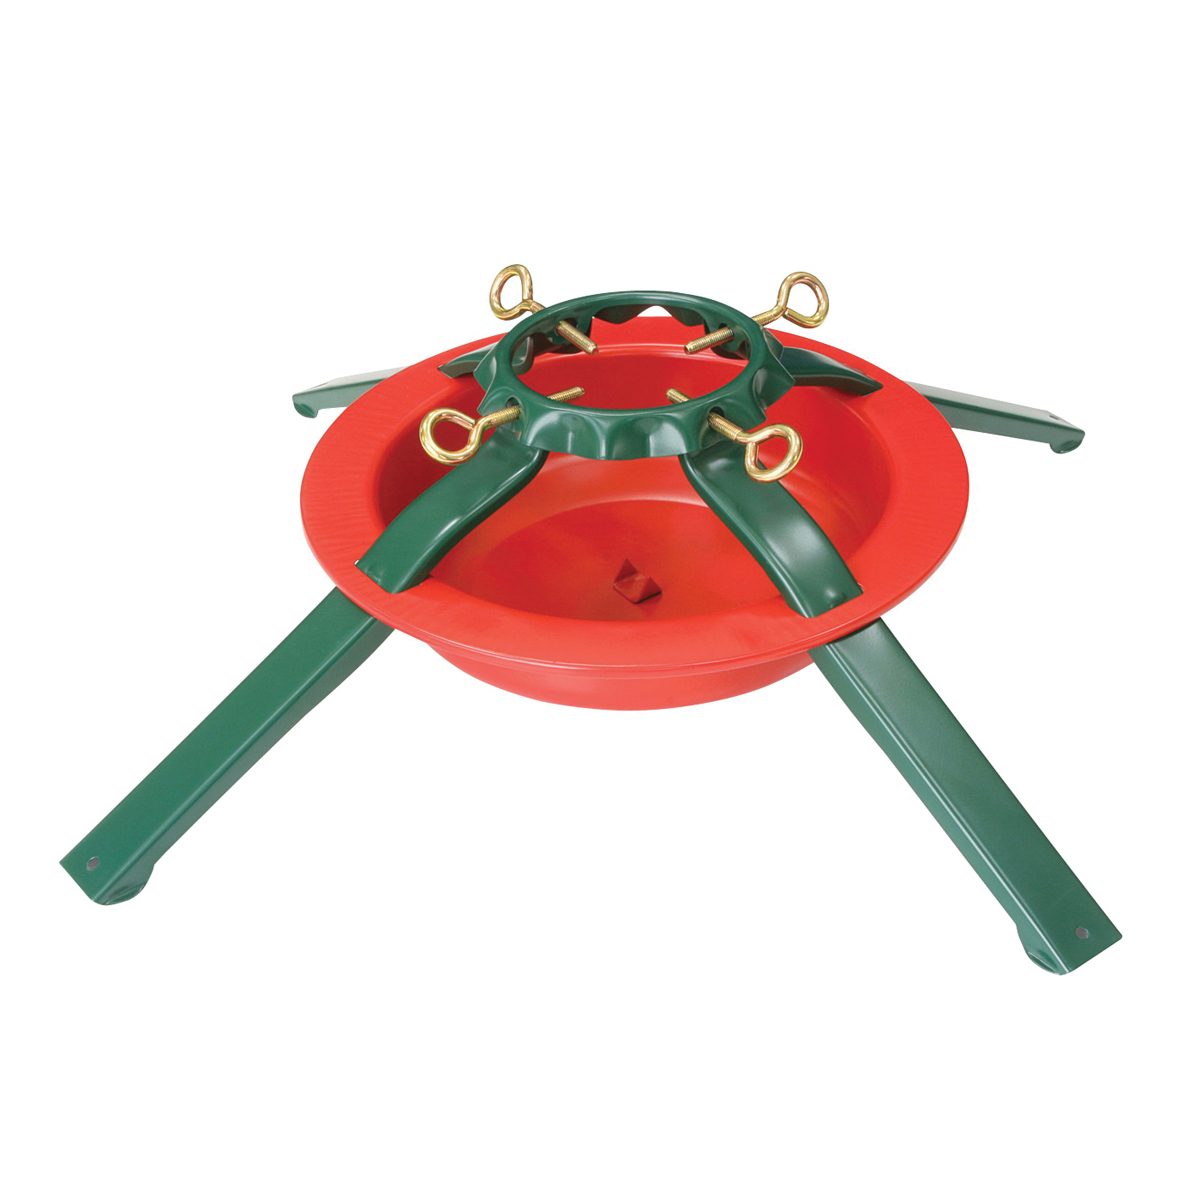 Picture of Holidaybasix 5180 Natural Tree Stand, Steel, Green/Red, Powder-Coated